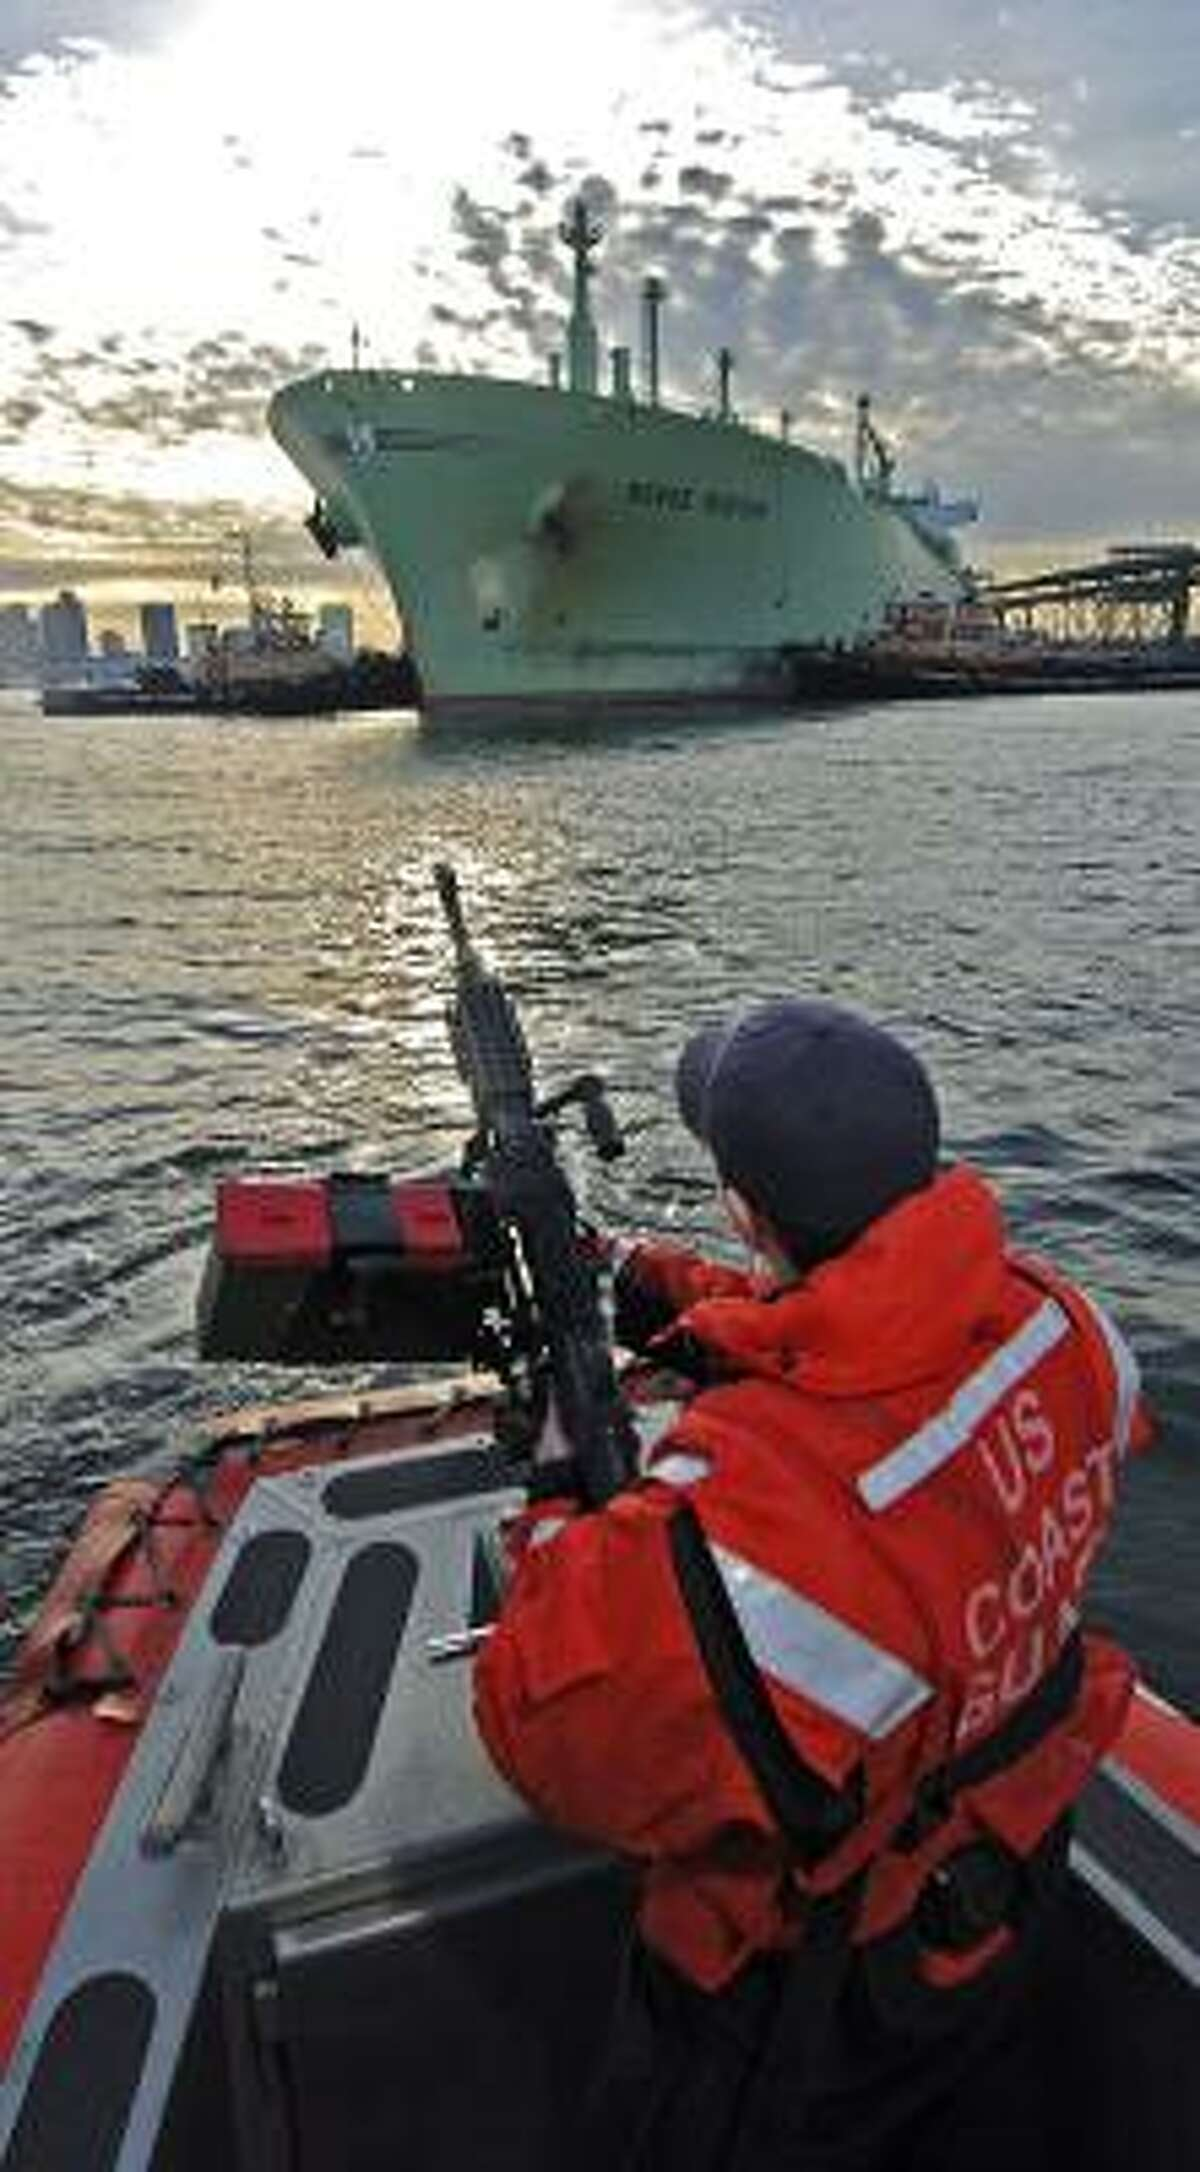 Coast Guard Seaman Darcy McGrail mans an M-240-B machine gun during a security escort of the liquid natural gas tanker Berge Boston in Boston Harbor in January. A congressional study questions how prepared the government is to handle a terrorist attack on an LNG facility.